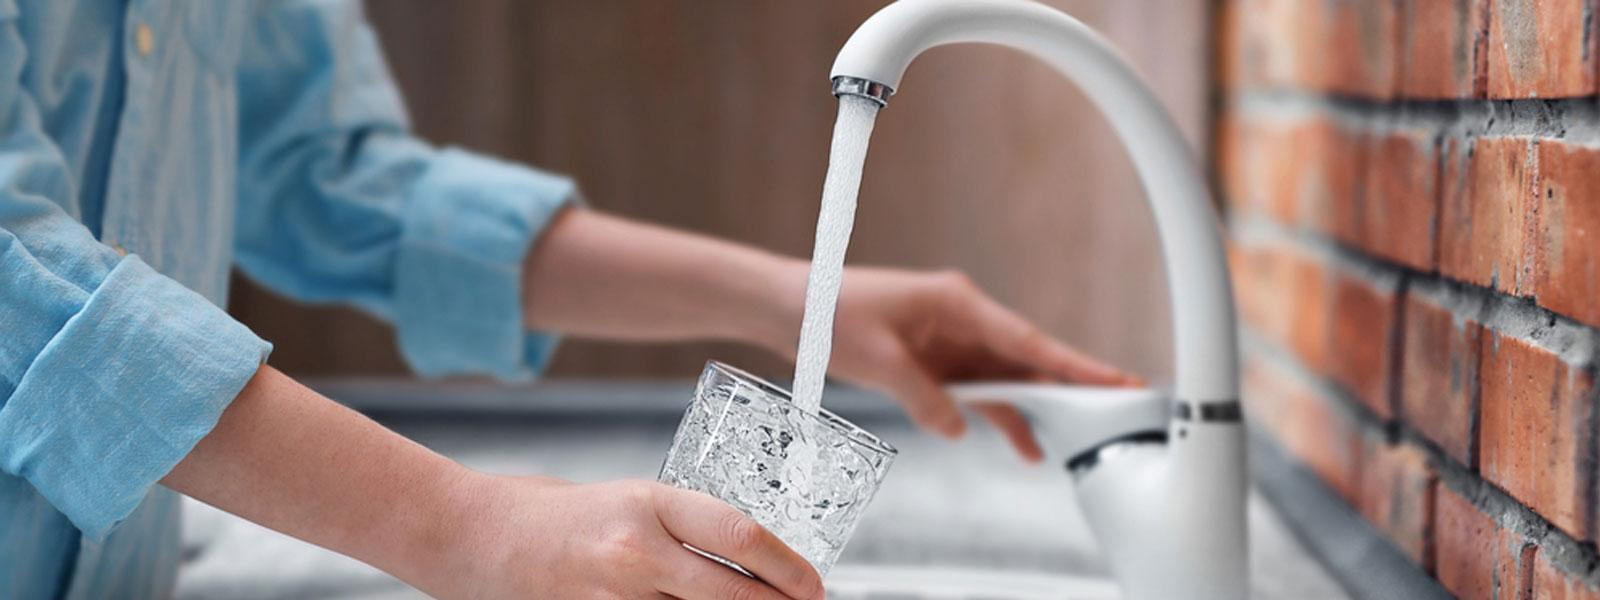 Woman pouring a drink from a tap and not wasting water